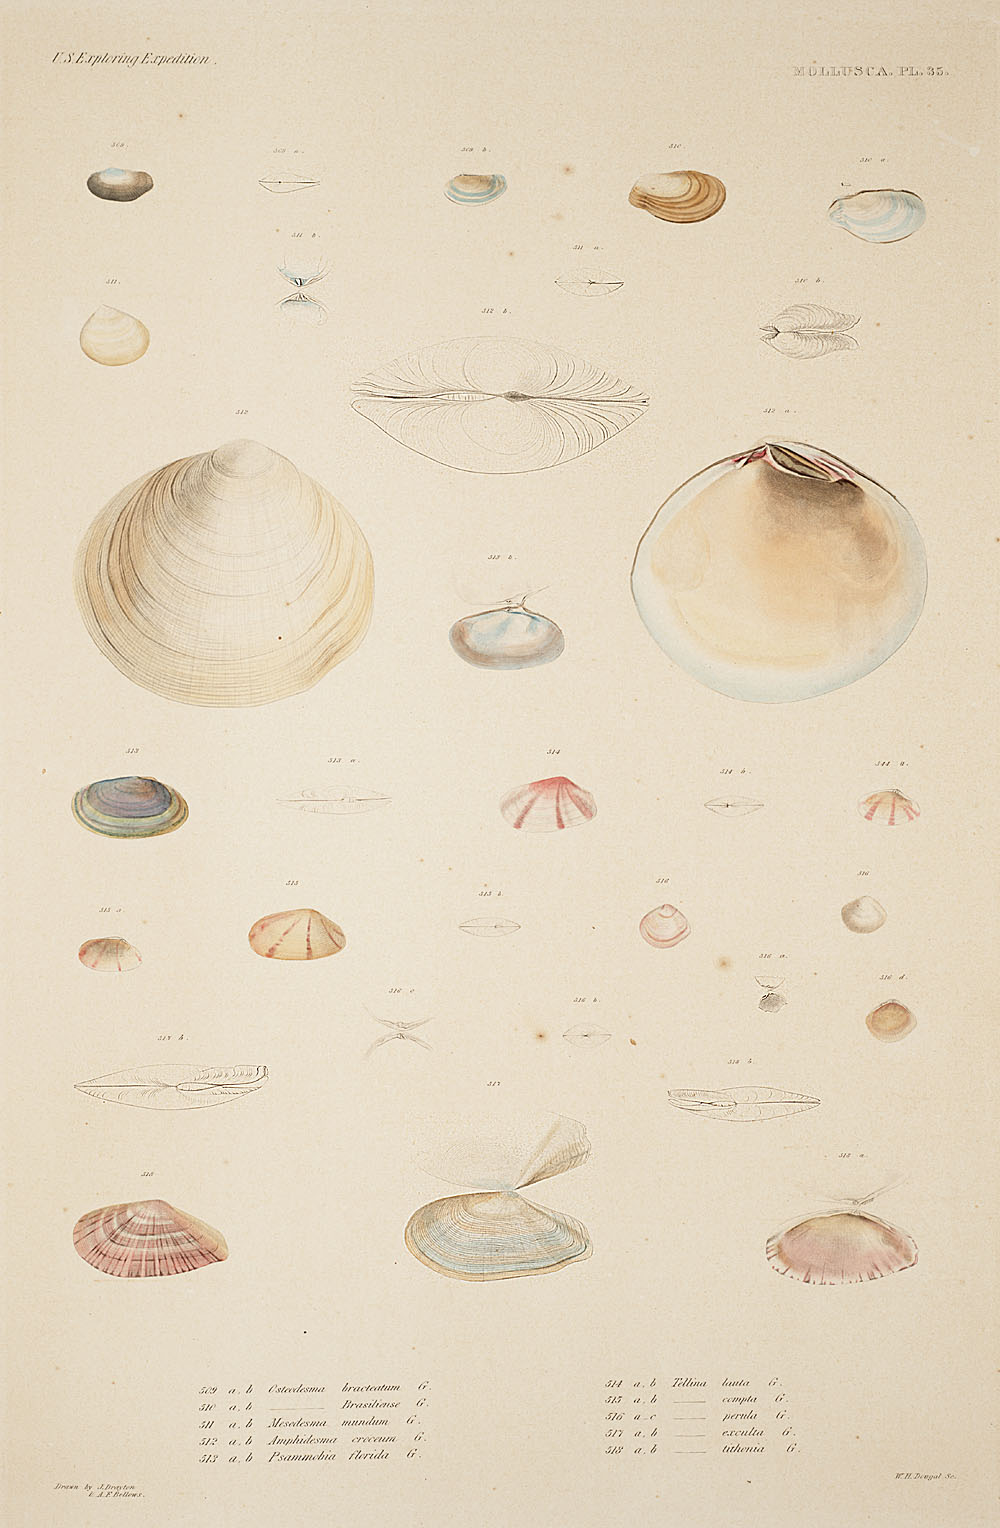 Mollusca, Pl. 35,  Image number:sil19-18-091b